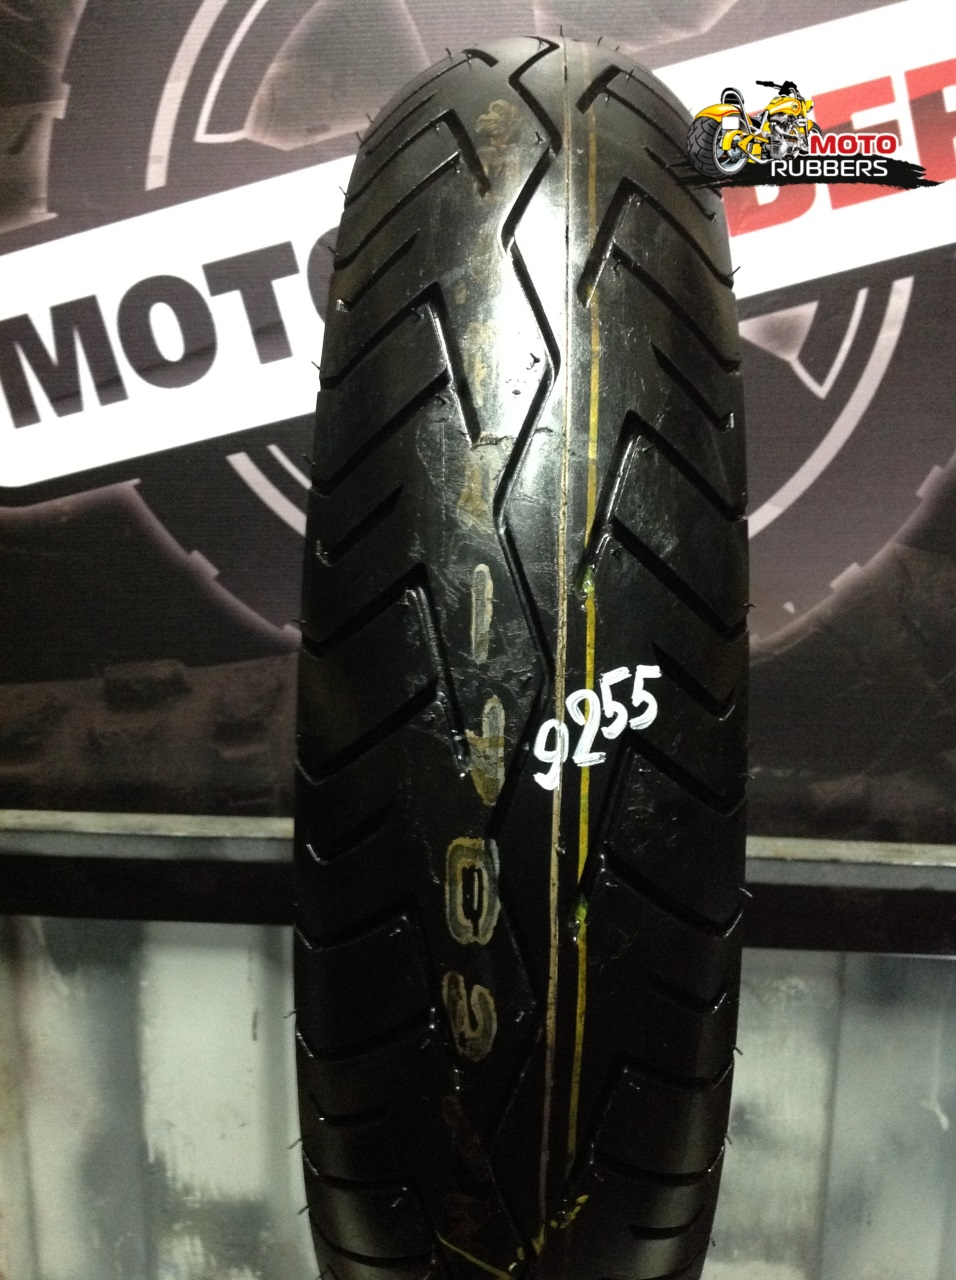 130/90 R16 Bridgestone bt 45